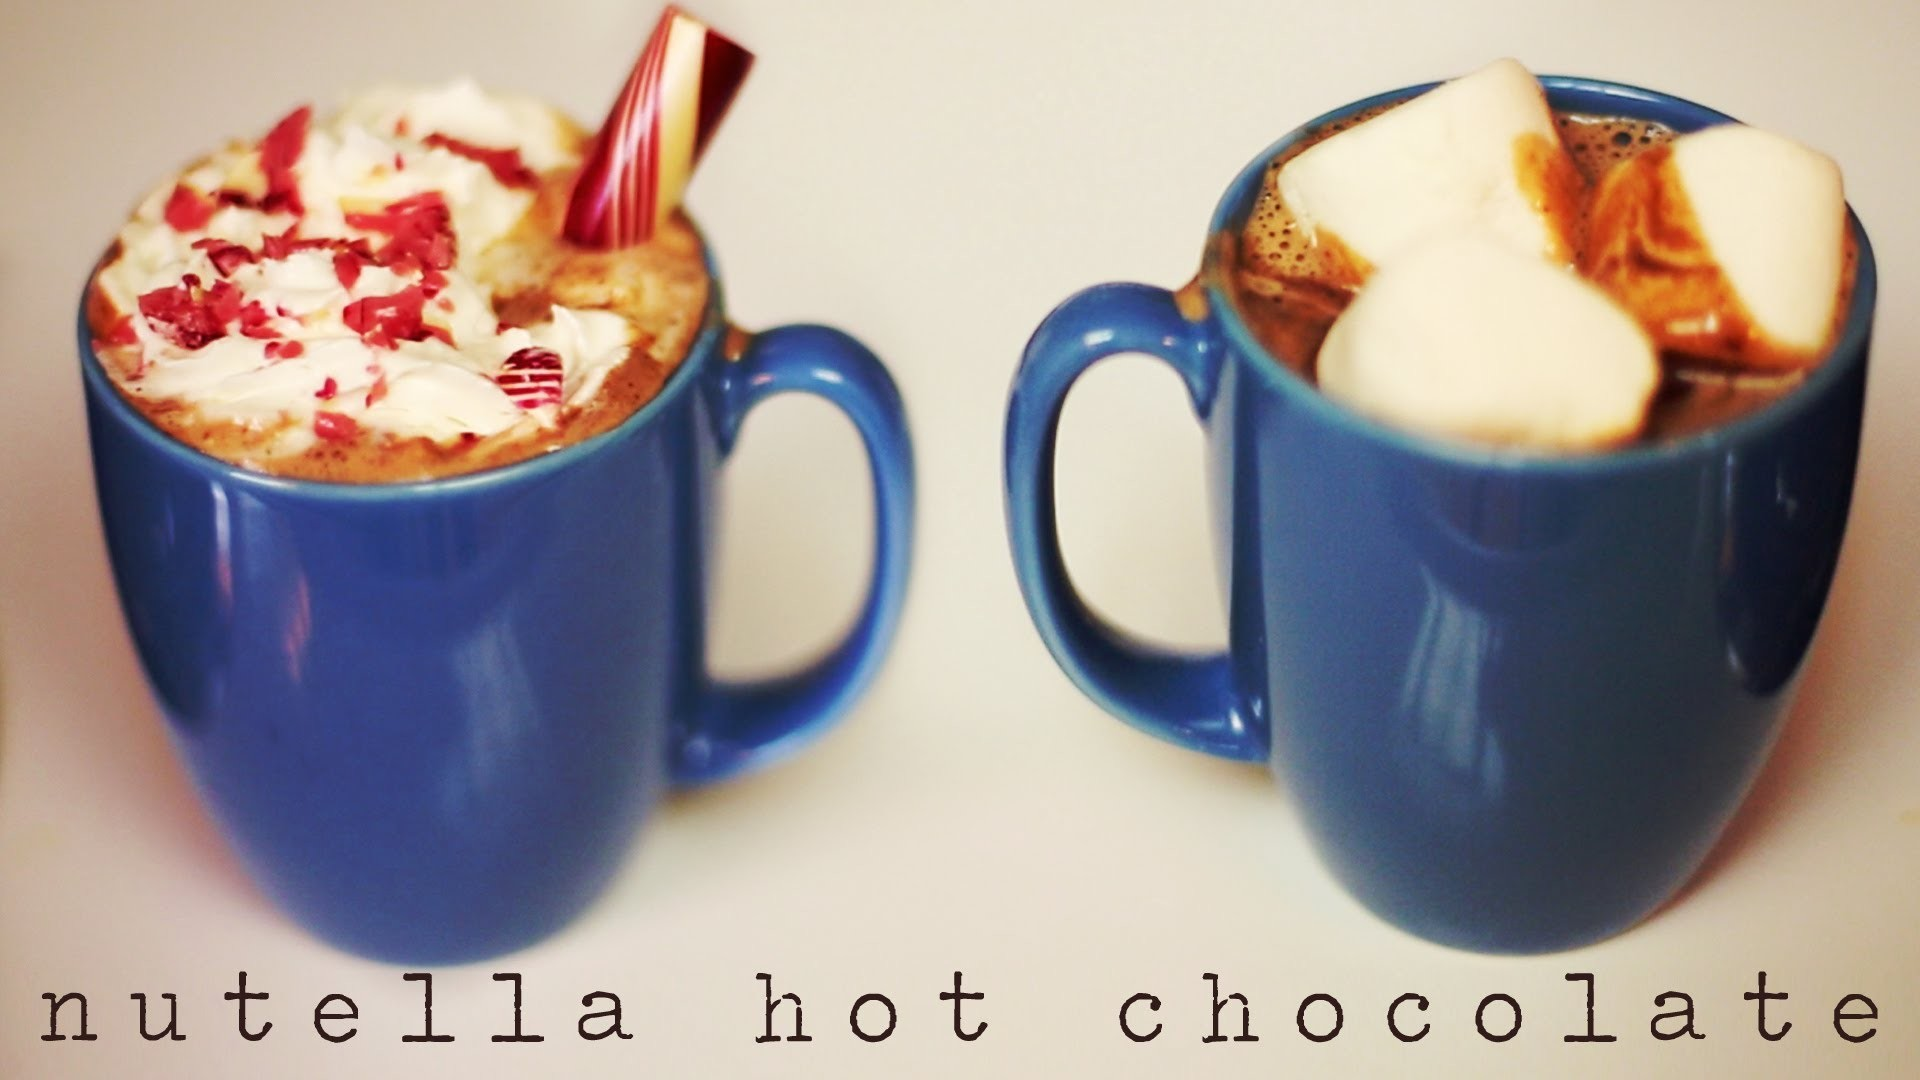 HOW TO: NUTELLA HOT CHOCOLATE